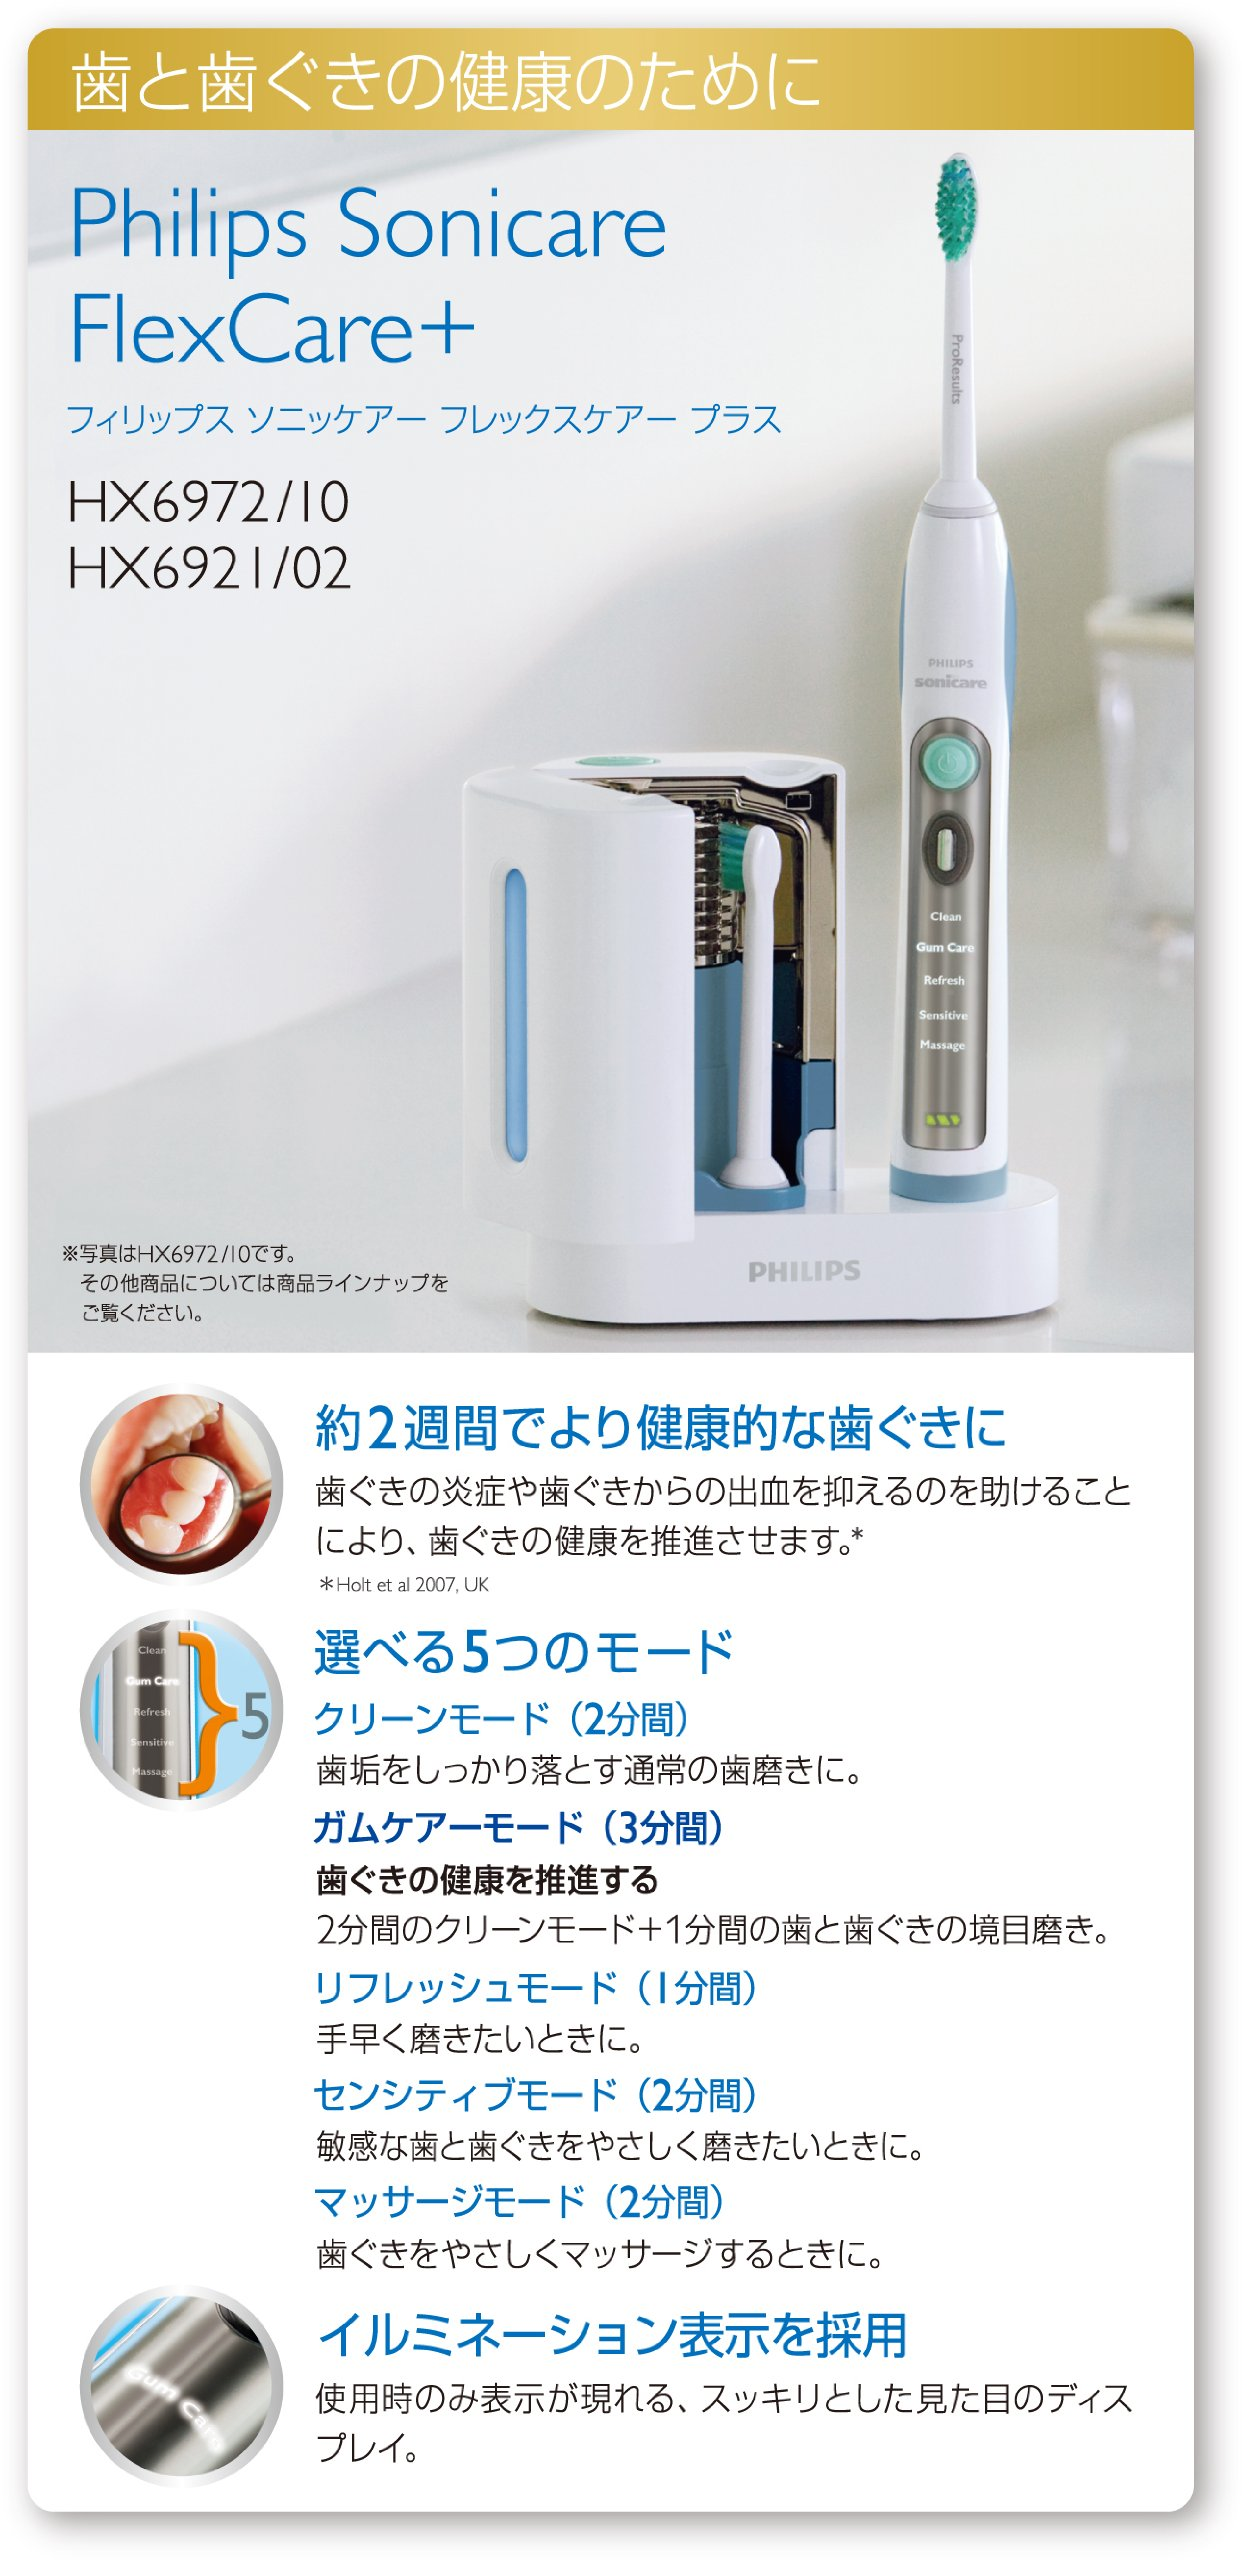 PHILIPS sonicare 電動歯ブラシ Flex Care+ HX6921/02